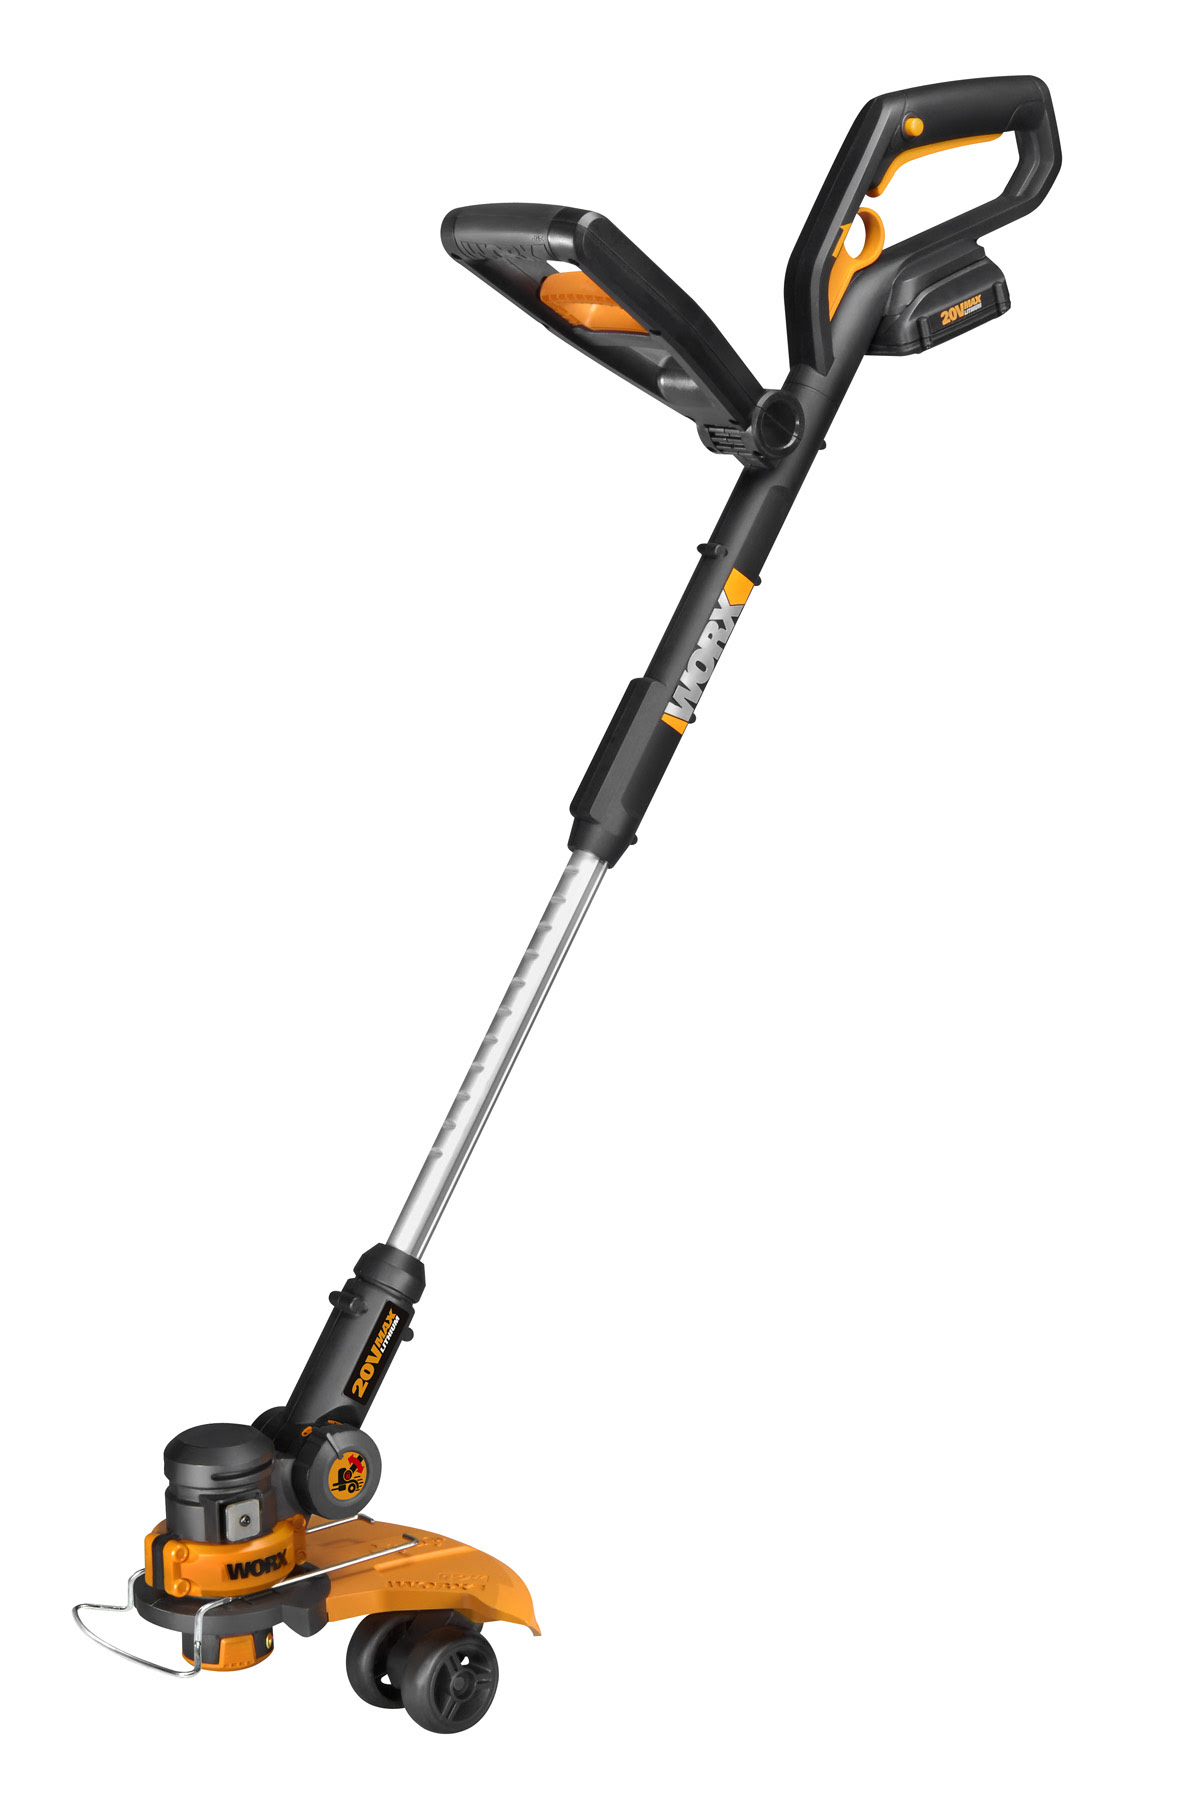 New WORX Power System Enables Single 20 volt Battery to Power